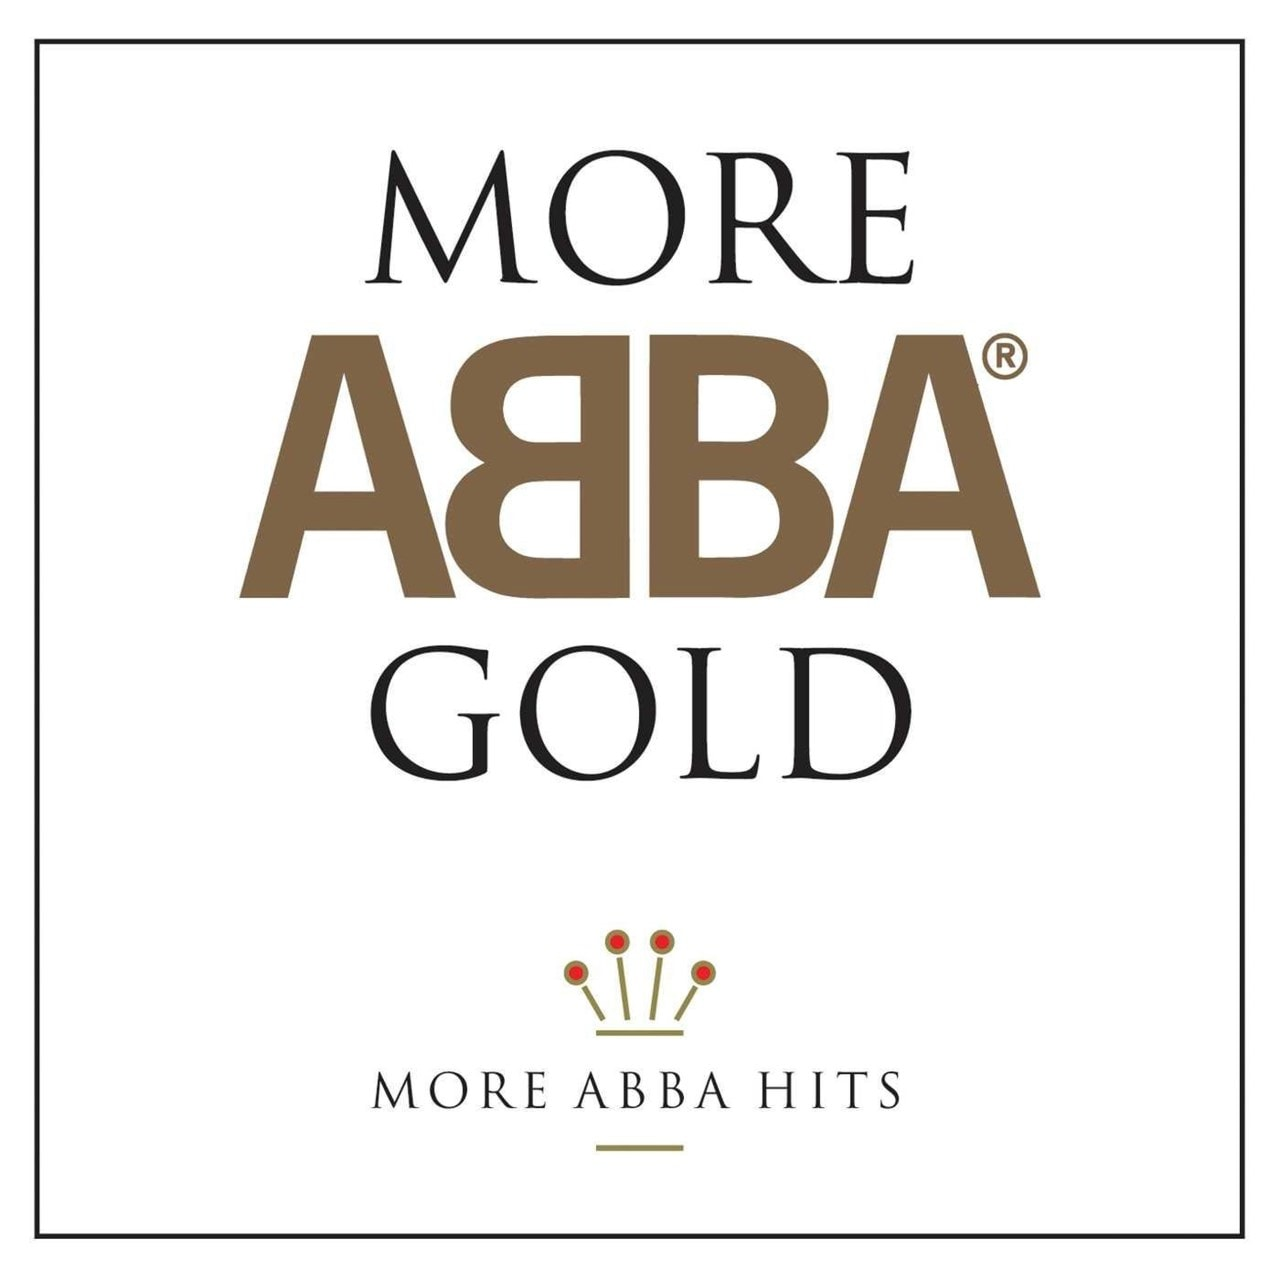 More ABBA Gold: More ABBA Hits - 1